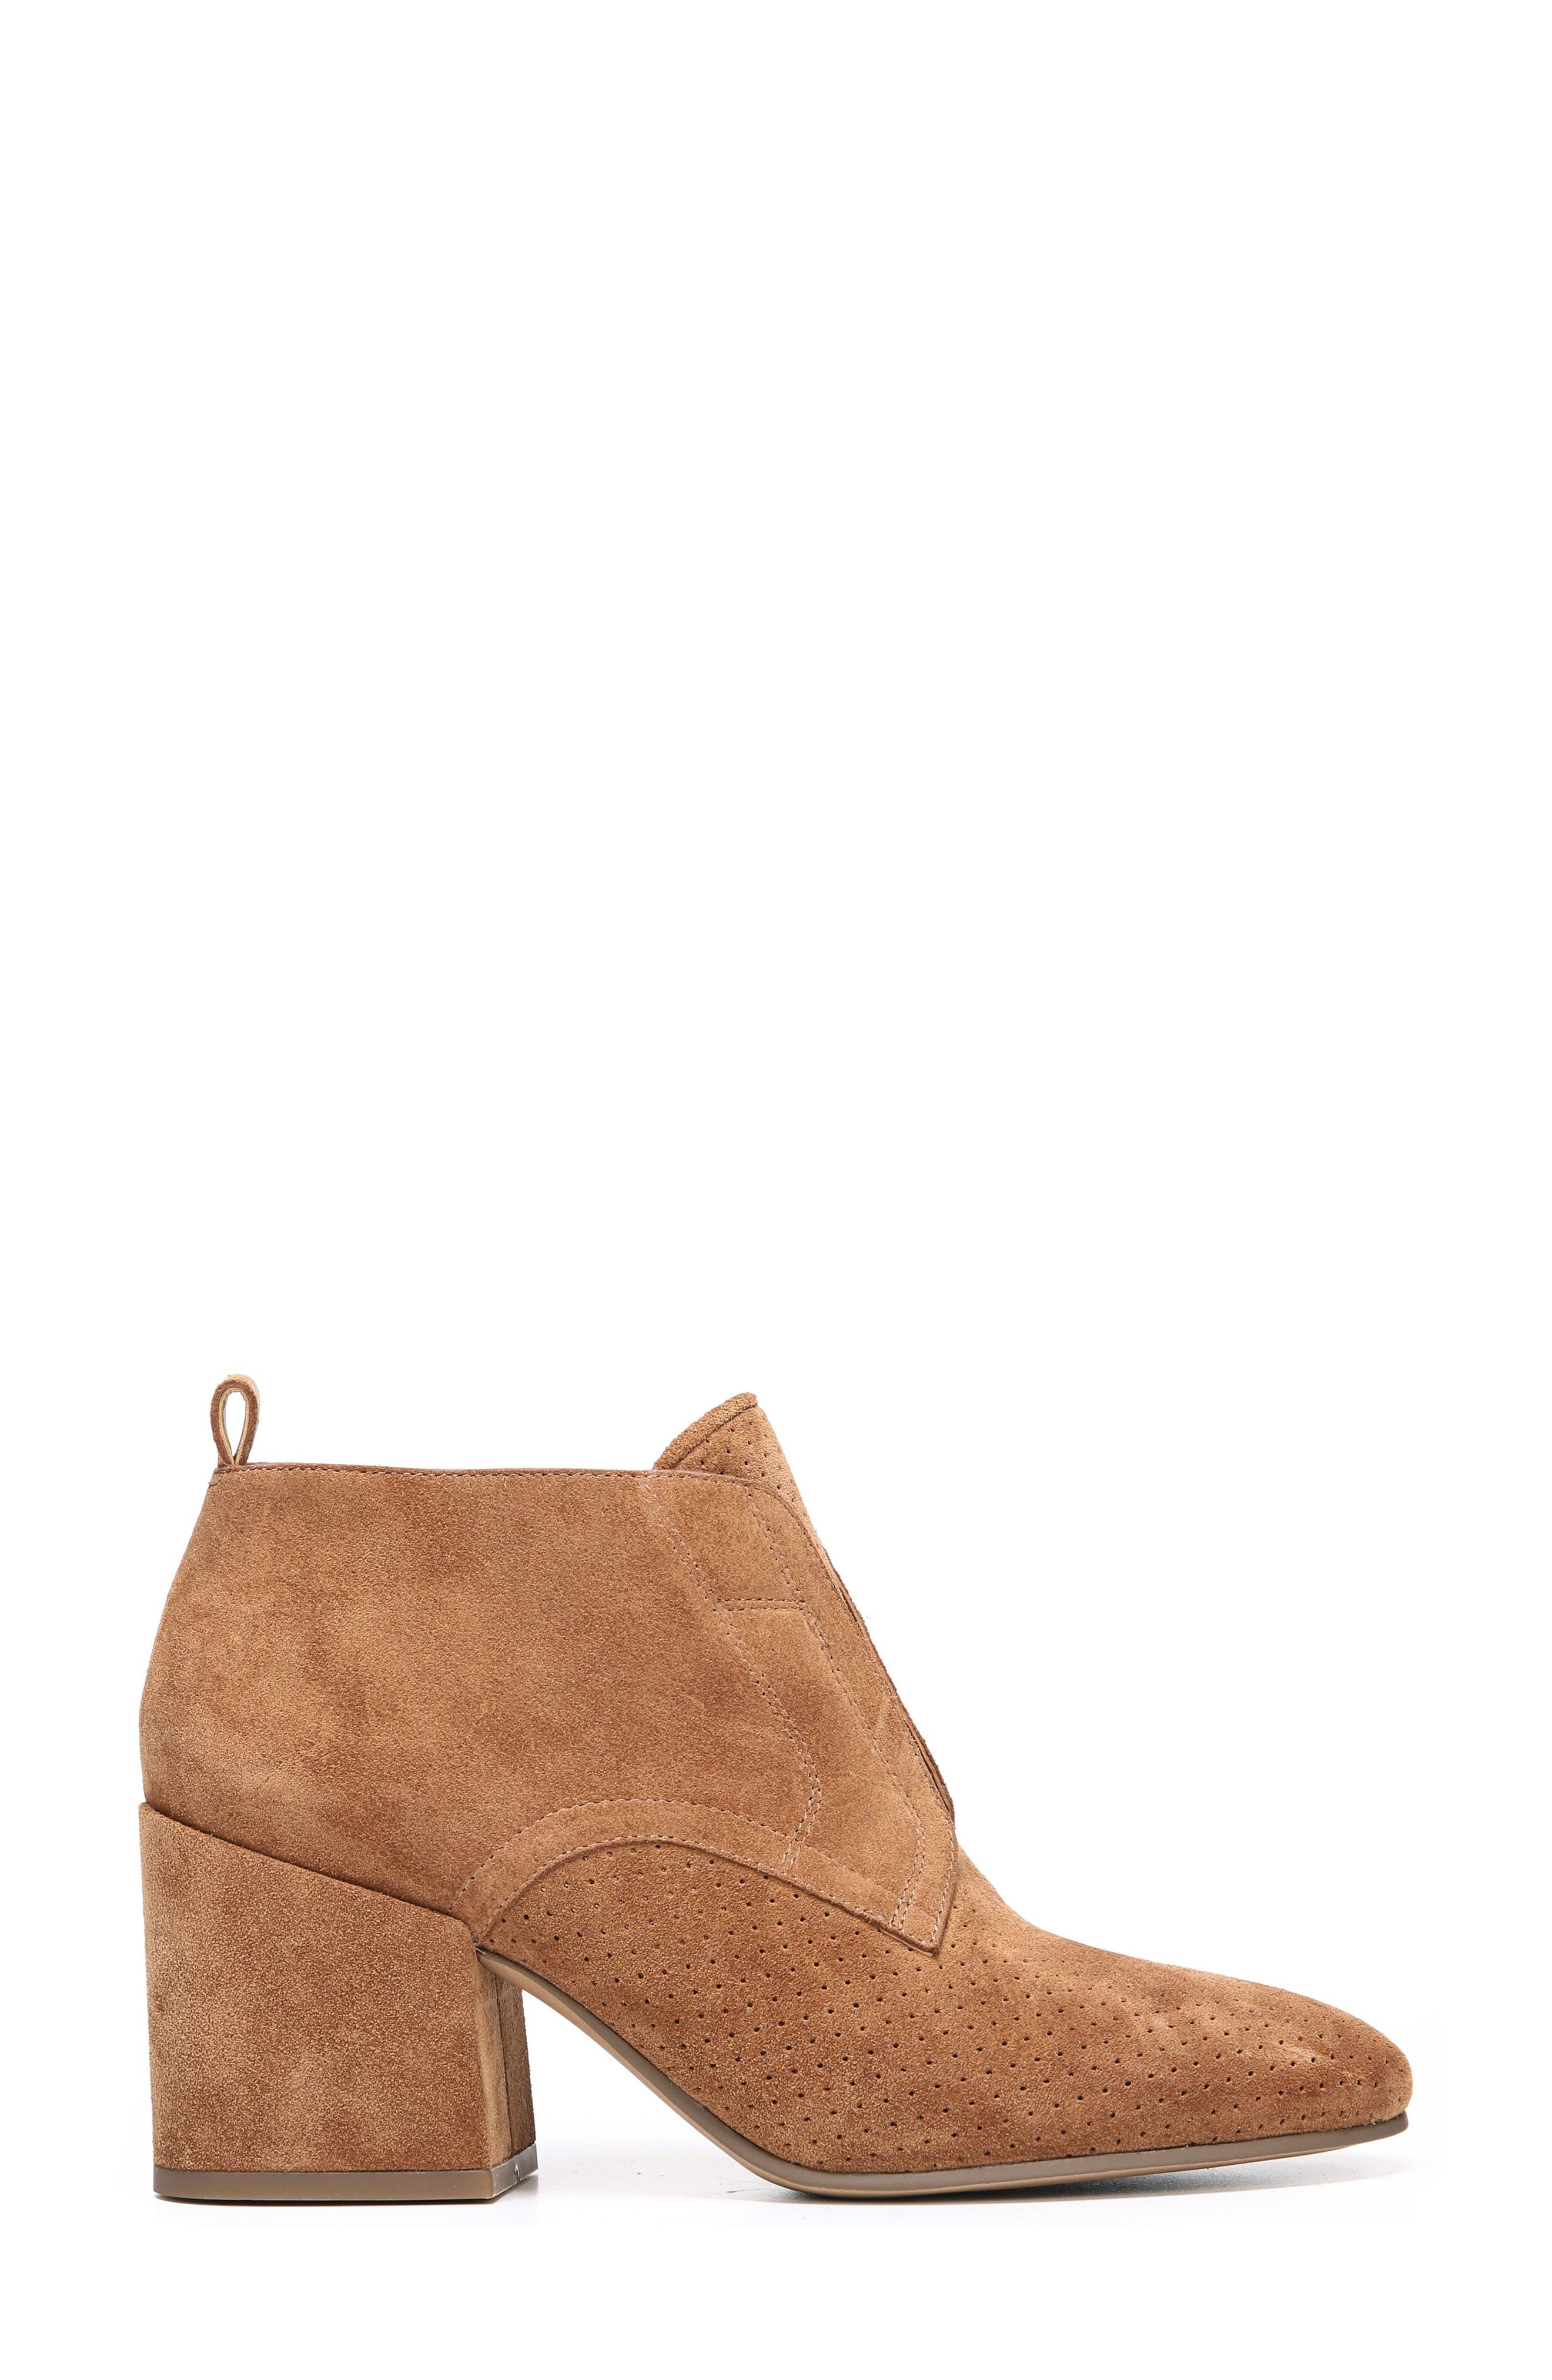 Alfie Bootie,                             Alternate thumbnail 3, color,                             Whiskey Suede